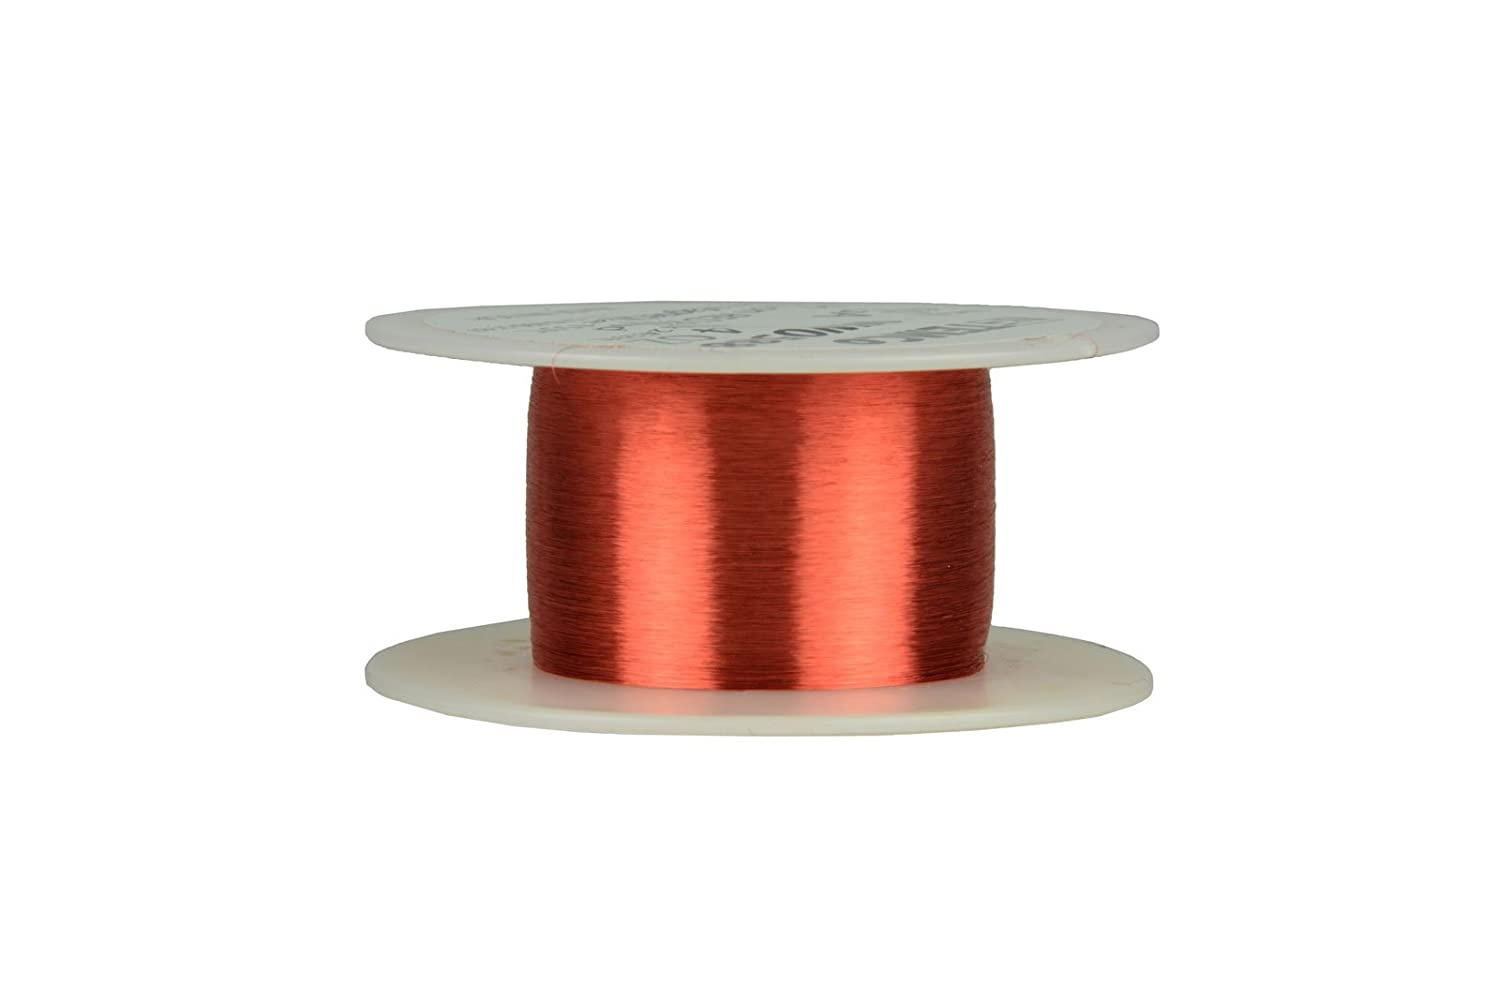 Amazon.com: TEMCo 45 AWG Copper Magnet Wire - 4 oz 24329 ft 155°C ...